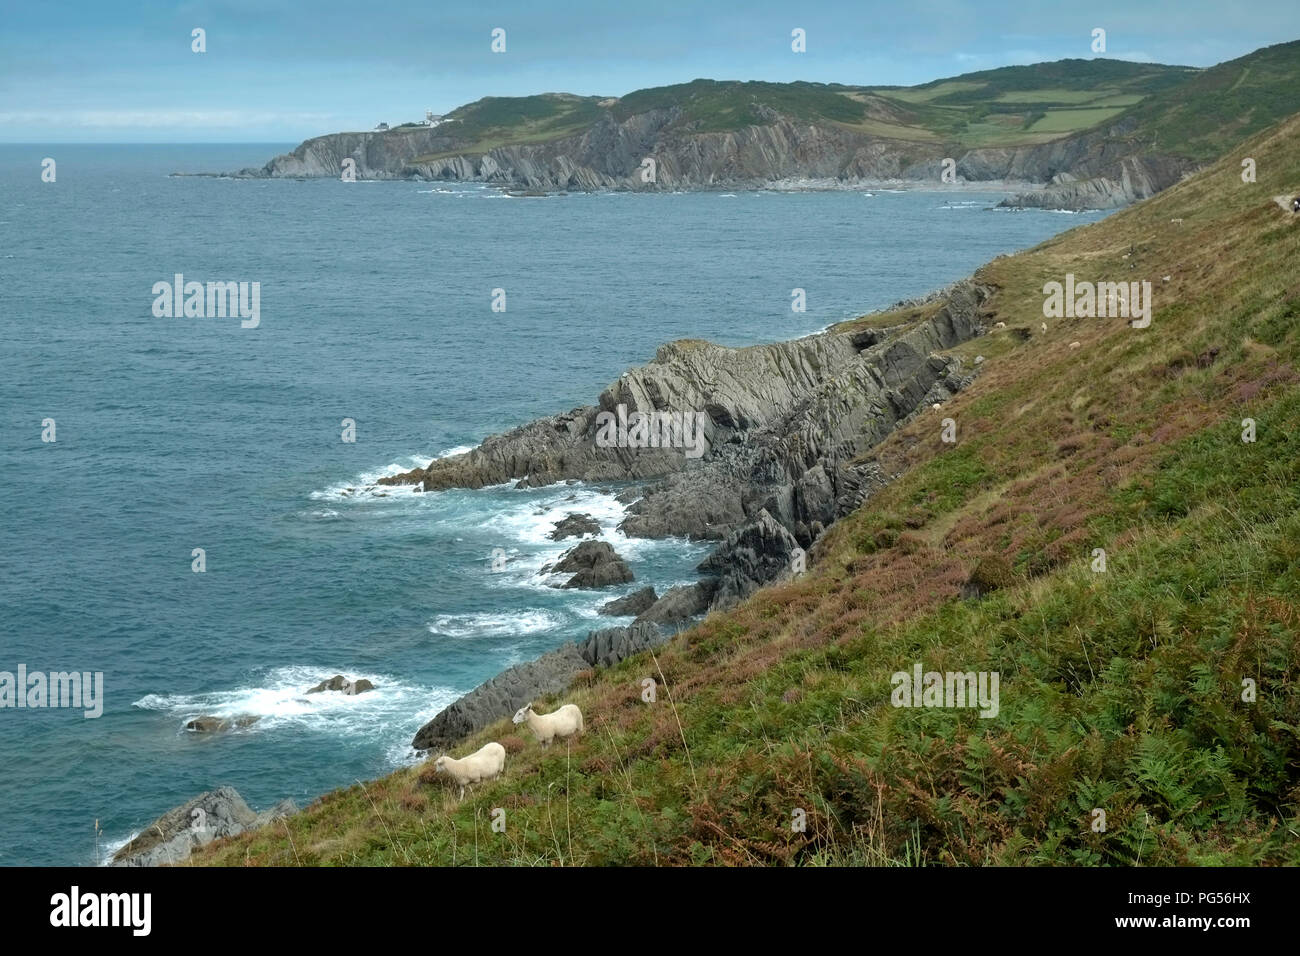 South West Coastal Path at Morte Point, Devonshire, UK - Stock Image